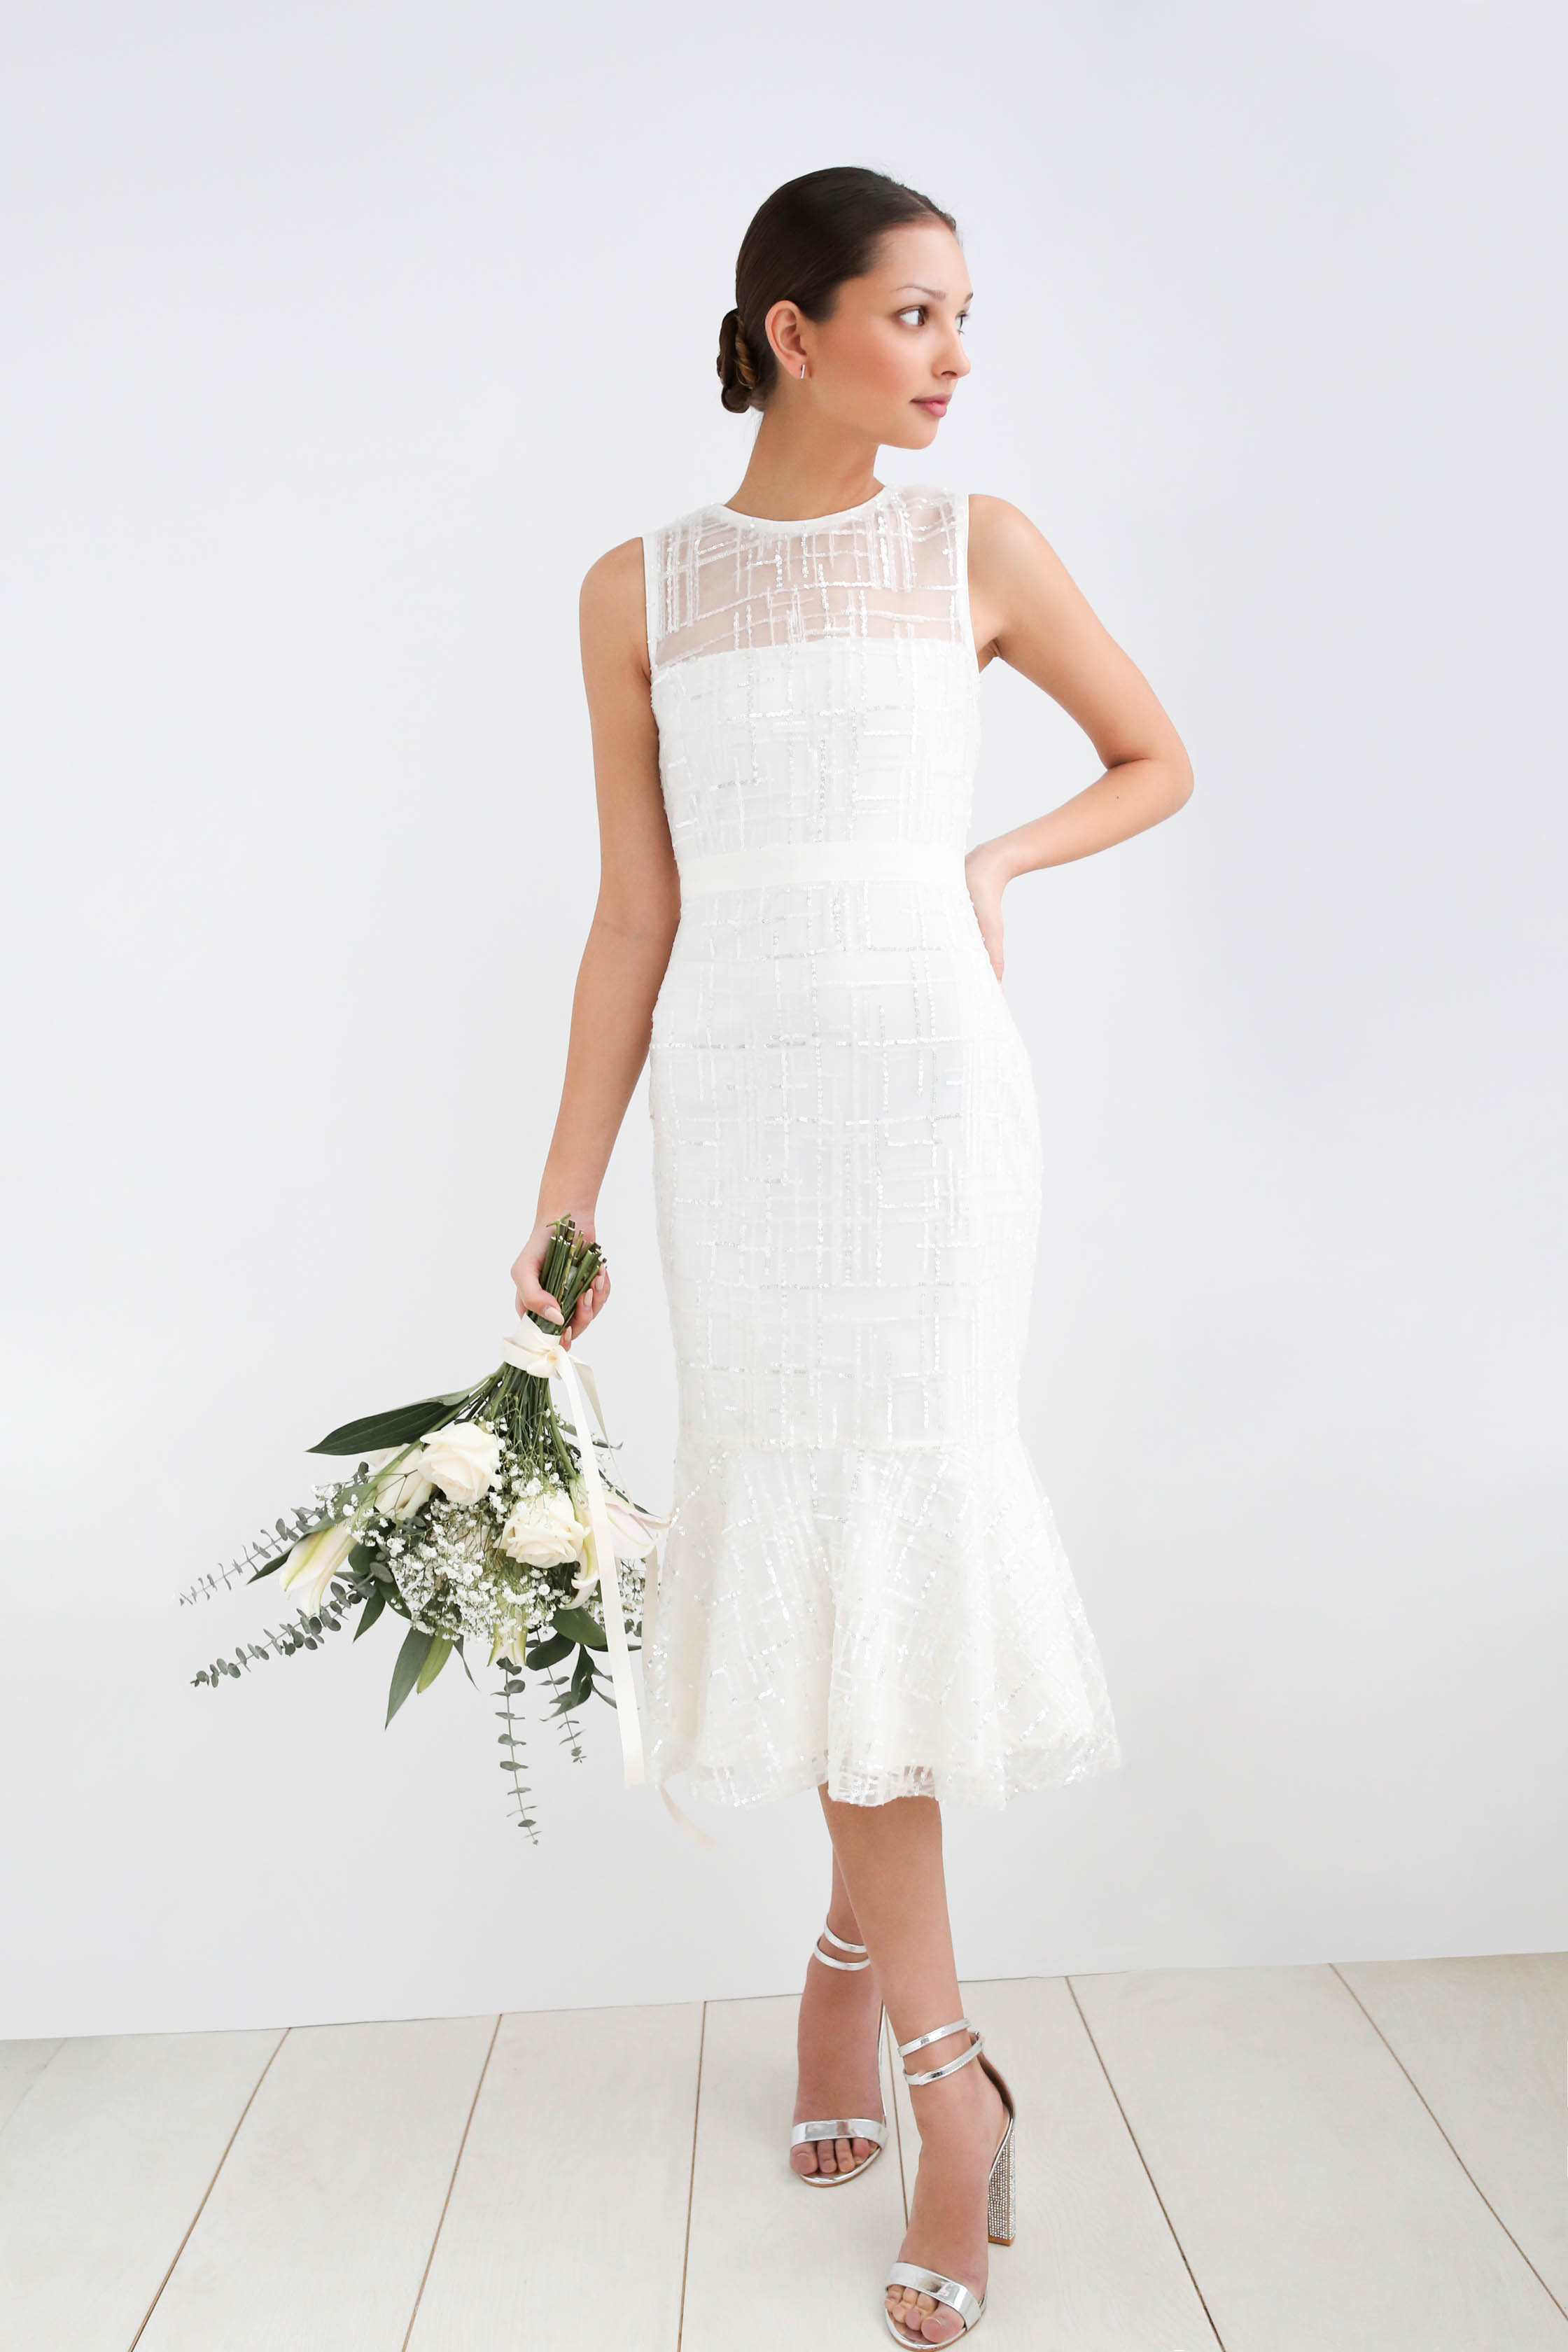 wedding looks for every budget - civil chic